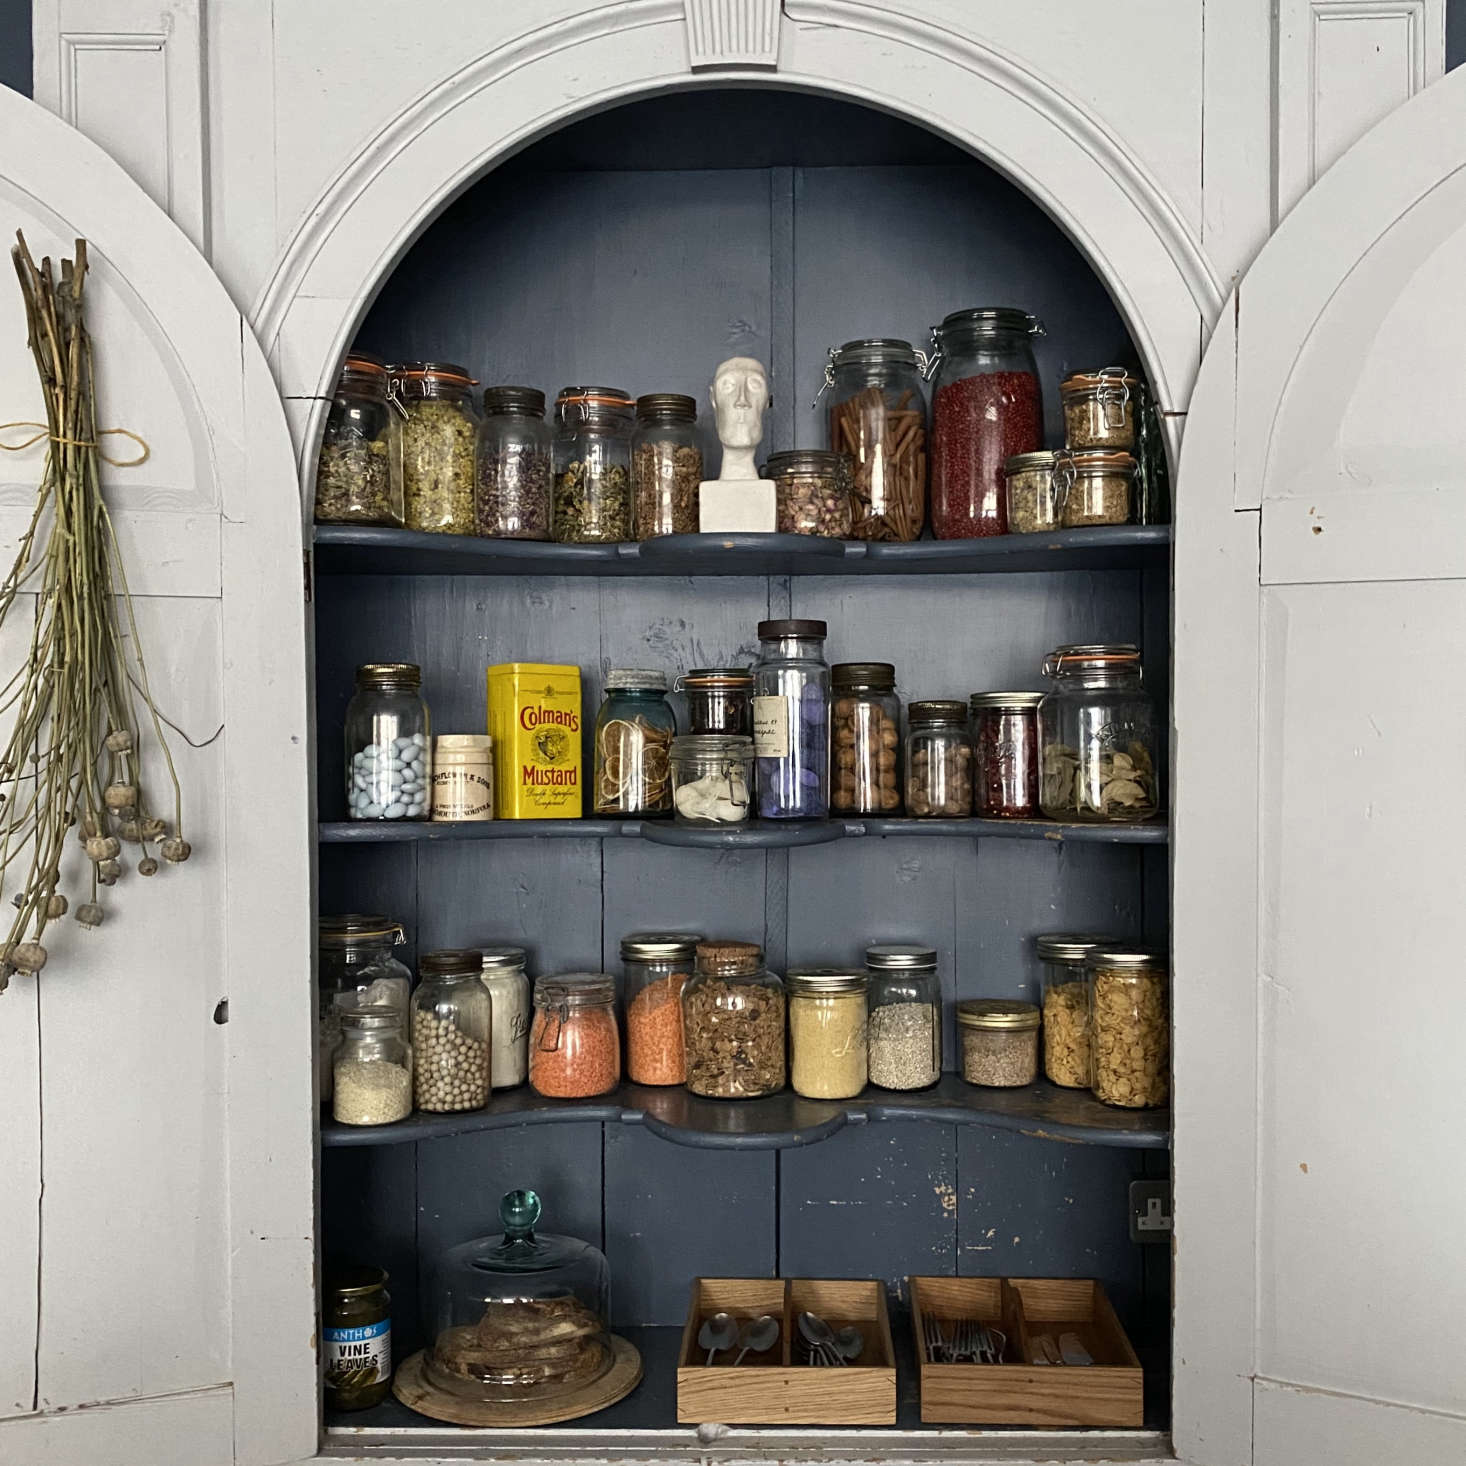 Another eBay purchase, an th century cupboard provides storage on the back wall of the kitchen.